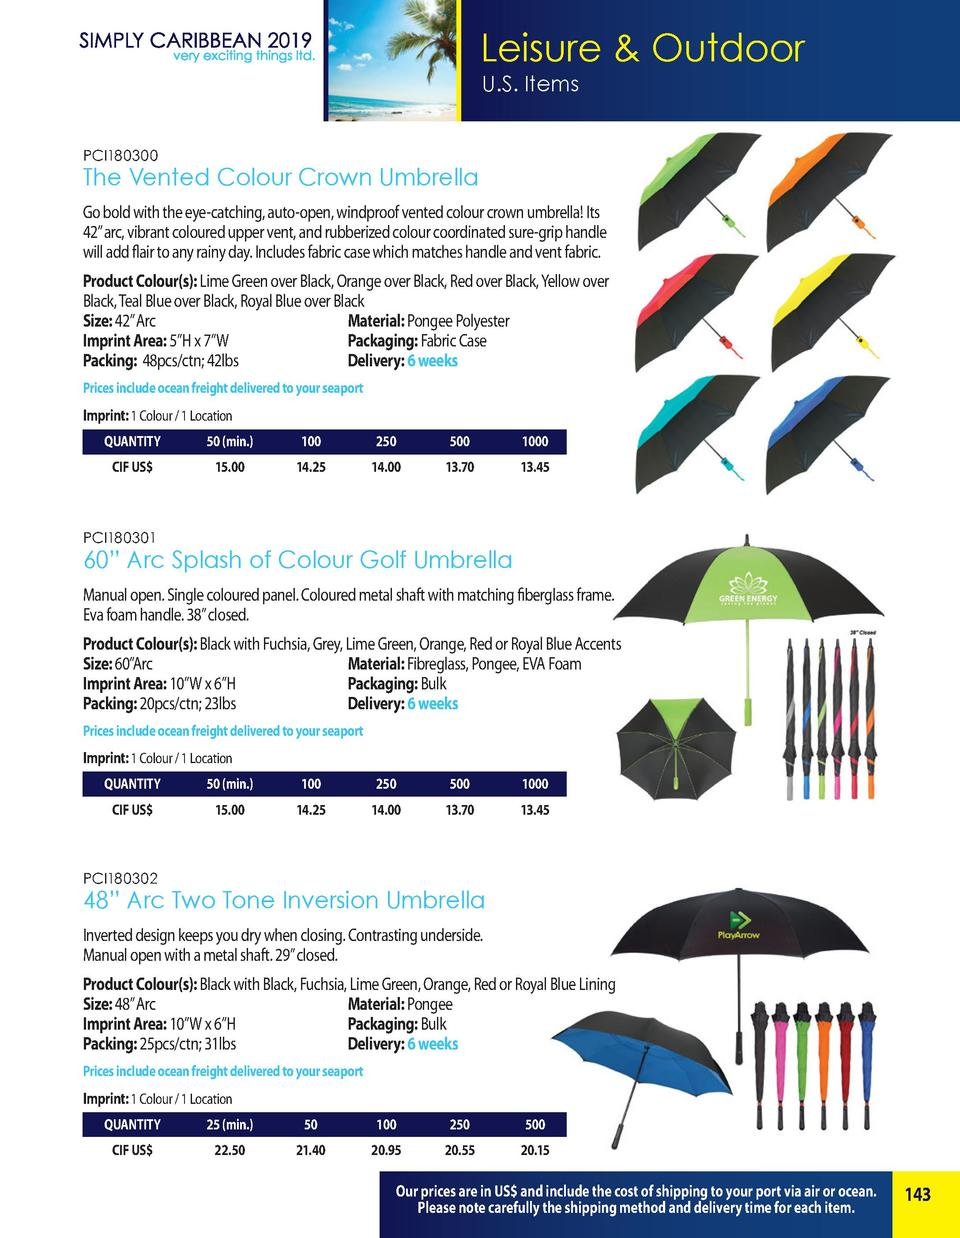 Leisure   Outdoor U.S. Items PCI180300  The Vented Colour Crown Umbrella Go bold with the eye-catching, auto-open, windpro...